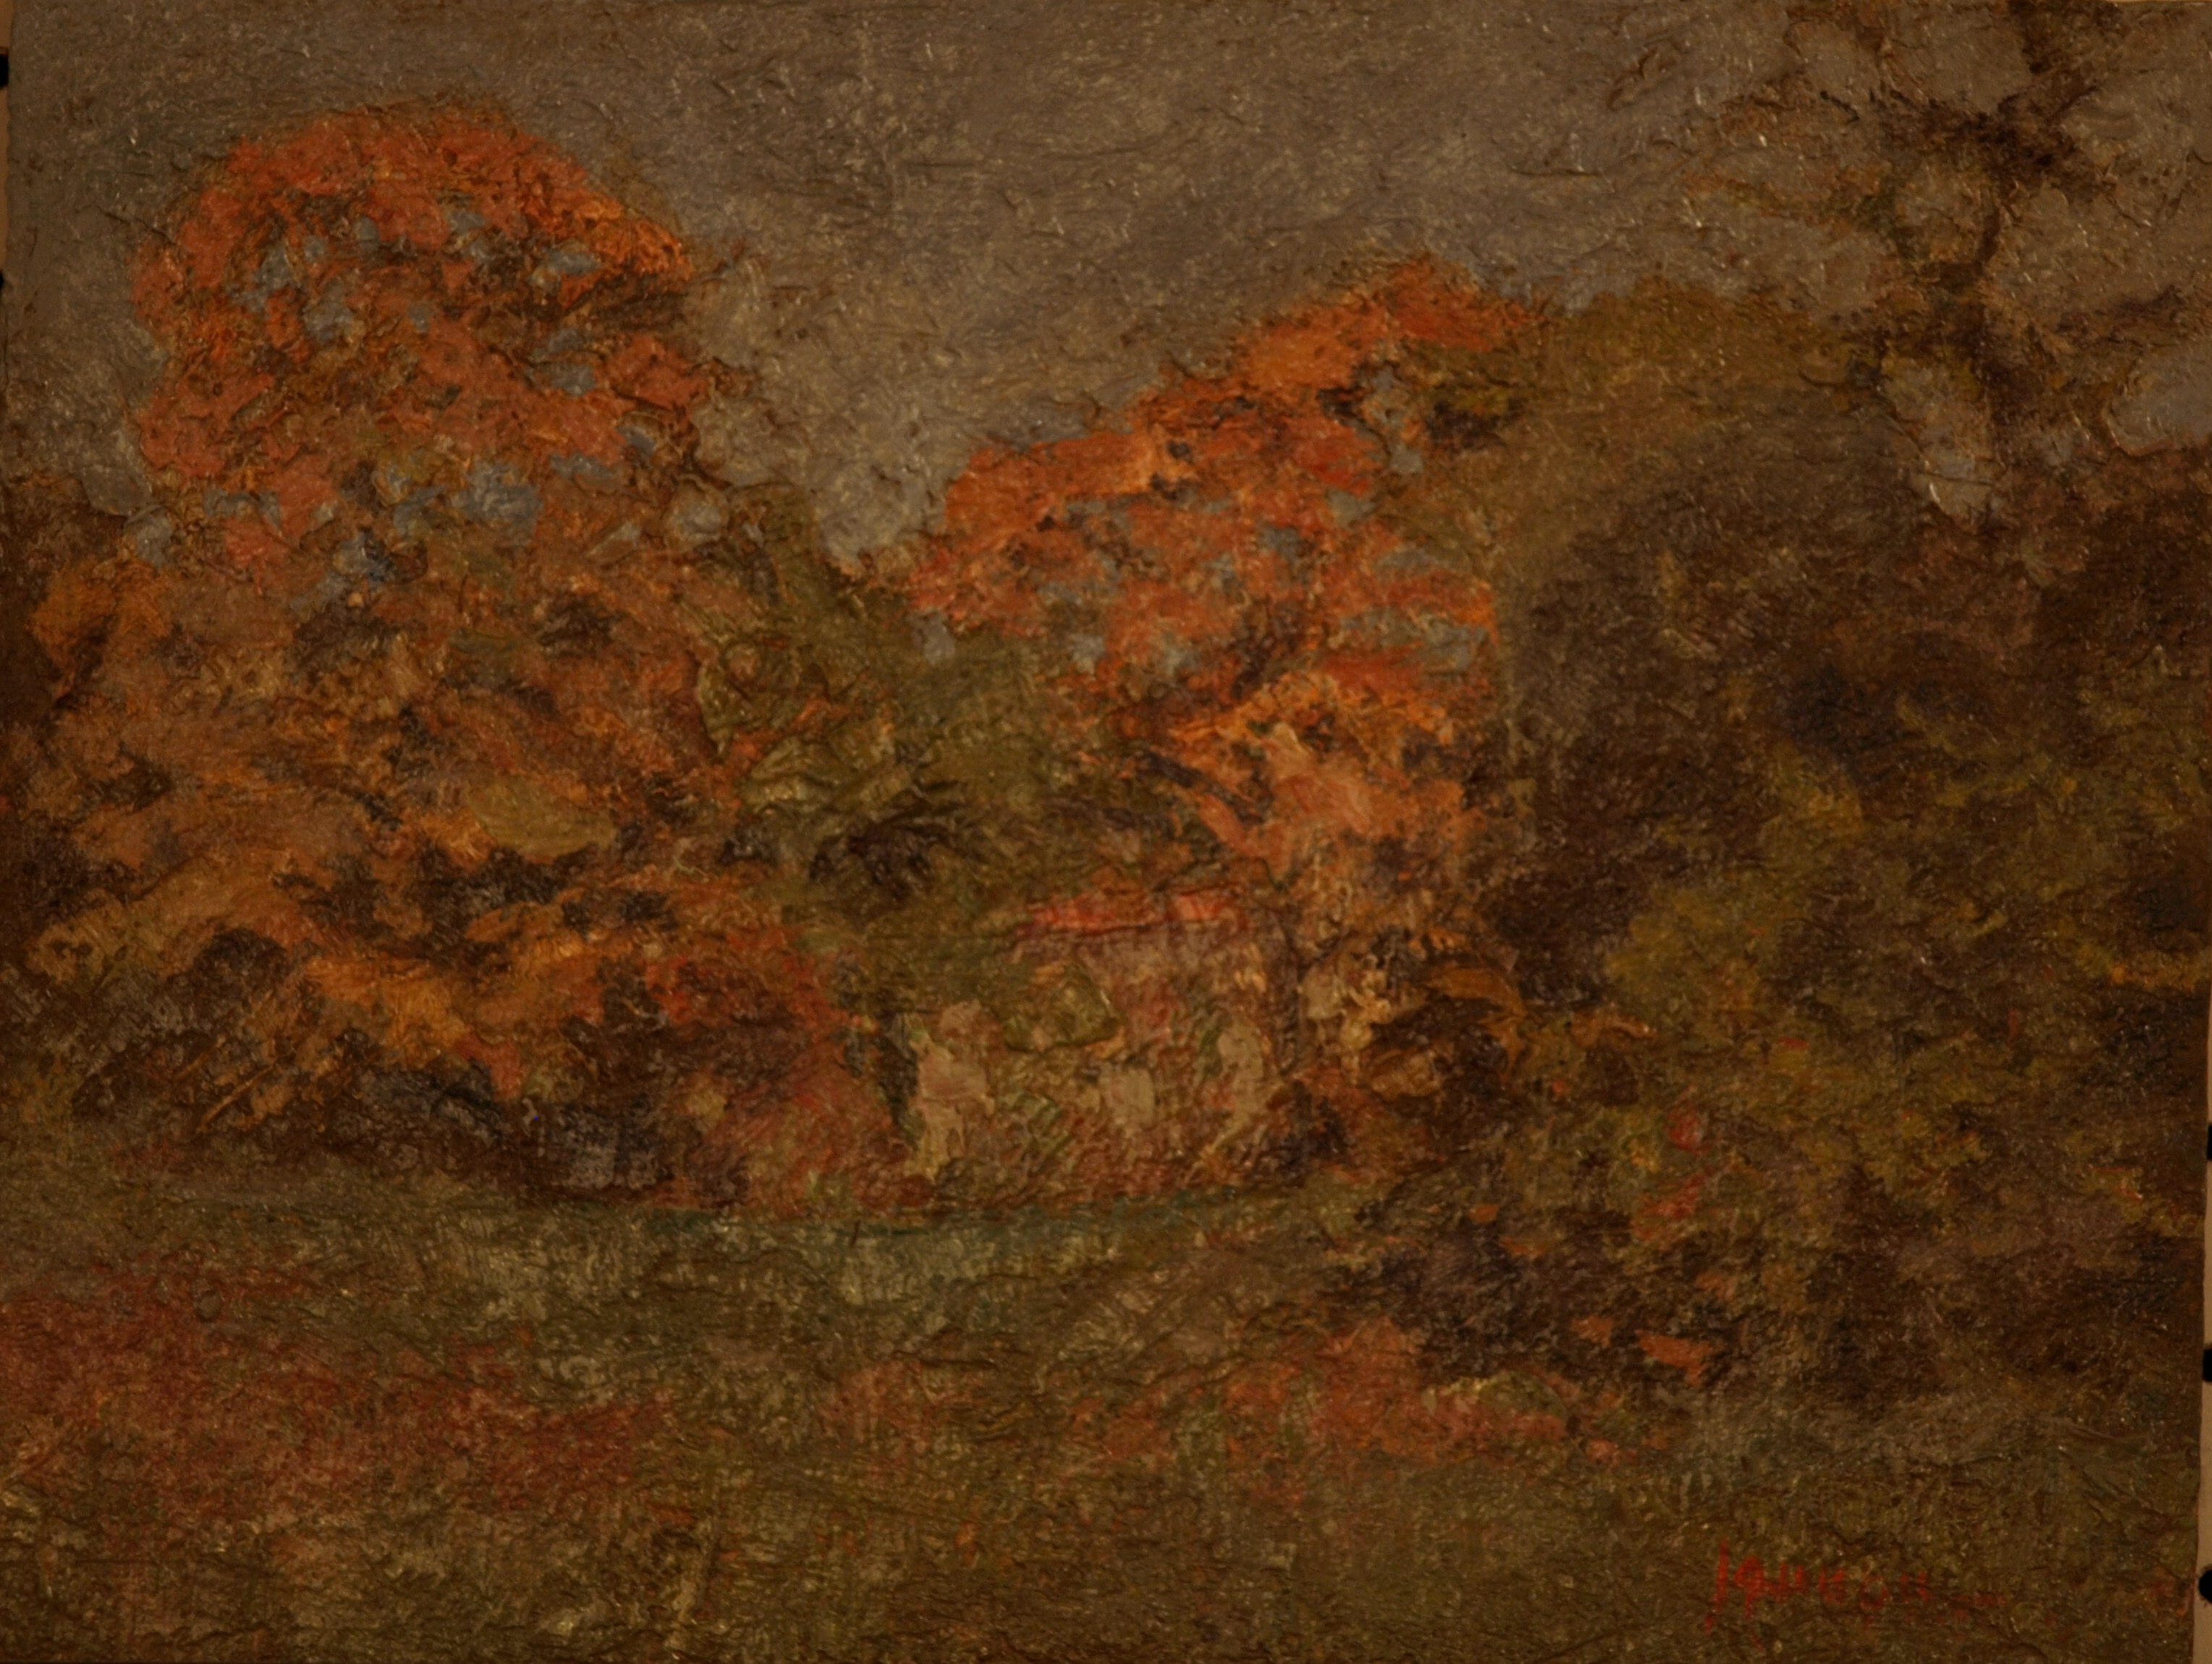 October Landscape, Oil on Panel, 8 x 10 Inches, by Bernard Lennon, $850